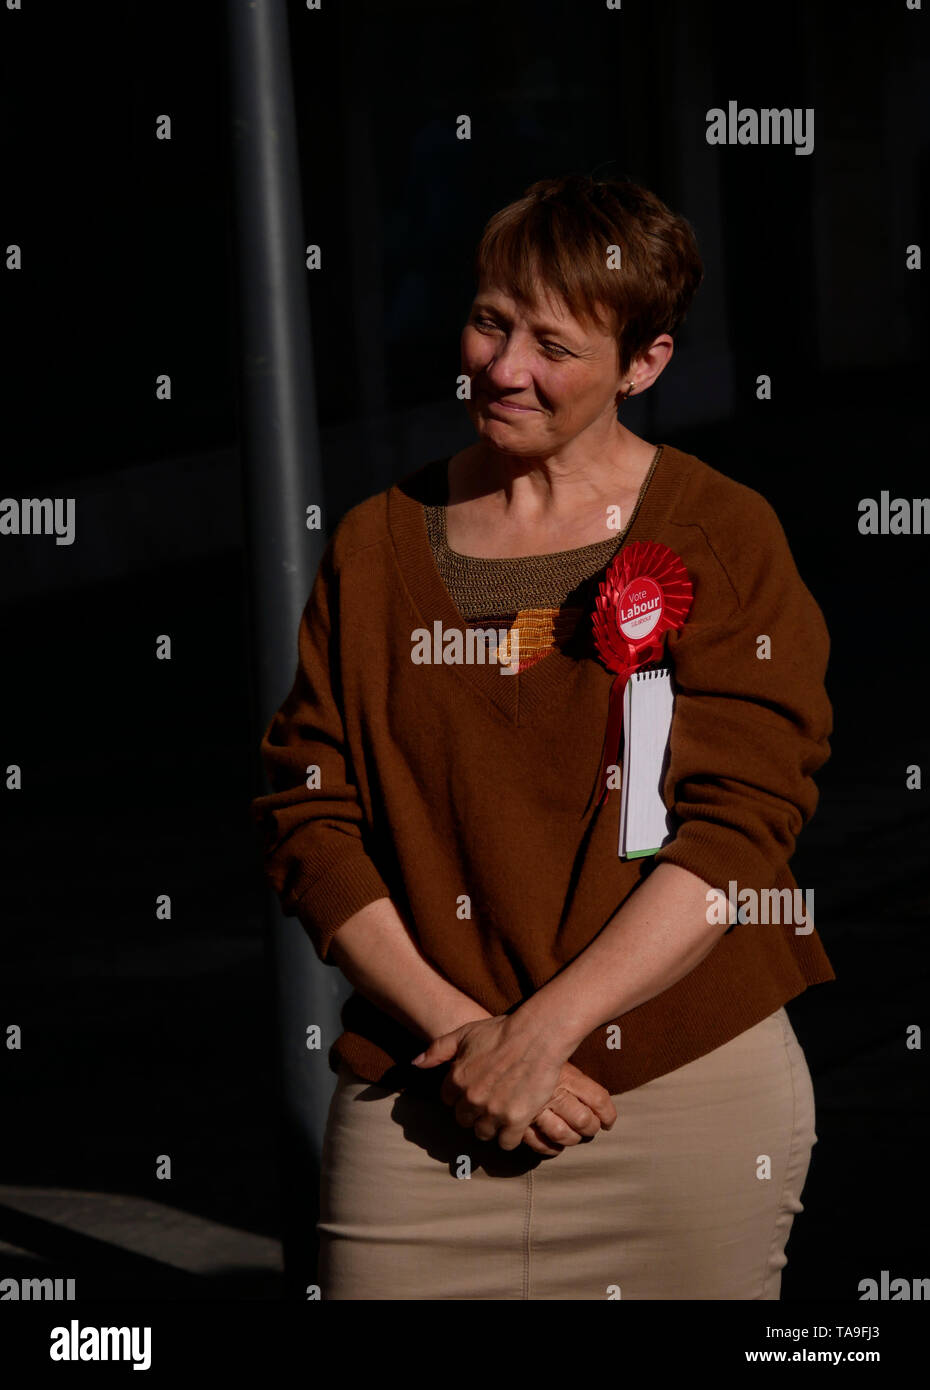 Exeter, UK. 22nd May, 2019. European Union Elections Campaign, Exeter, UK Credit: Anthony Collins/Alamy Live News Stock Photo